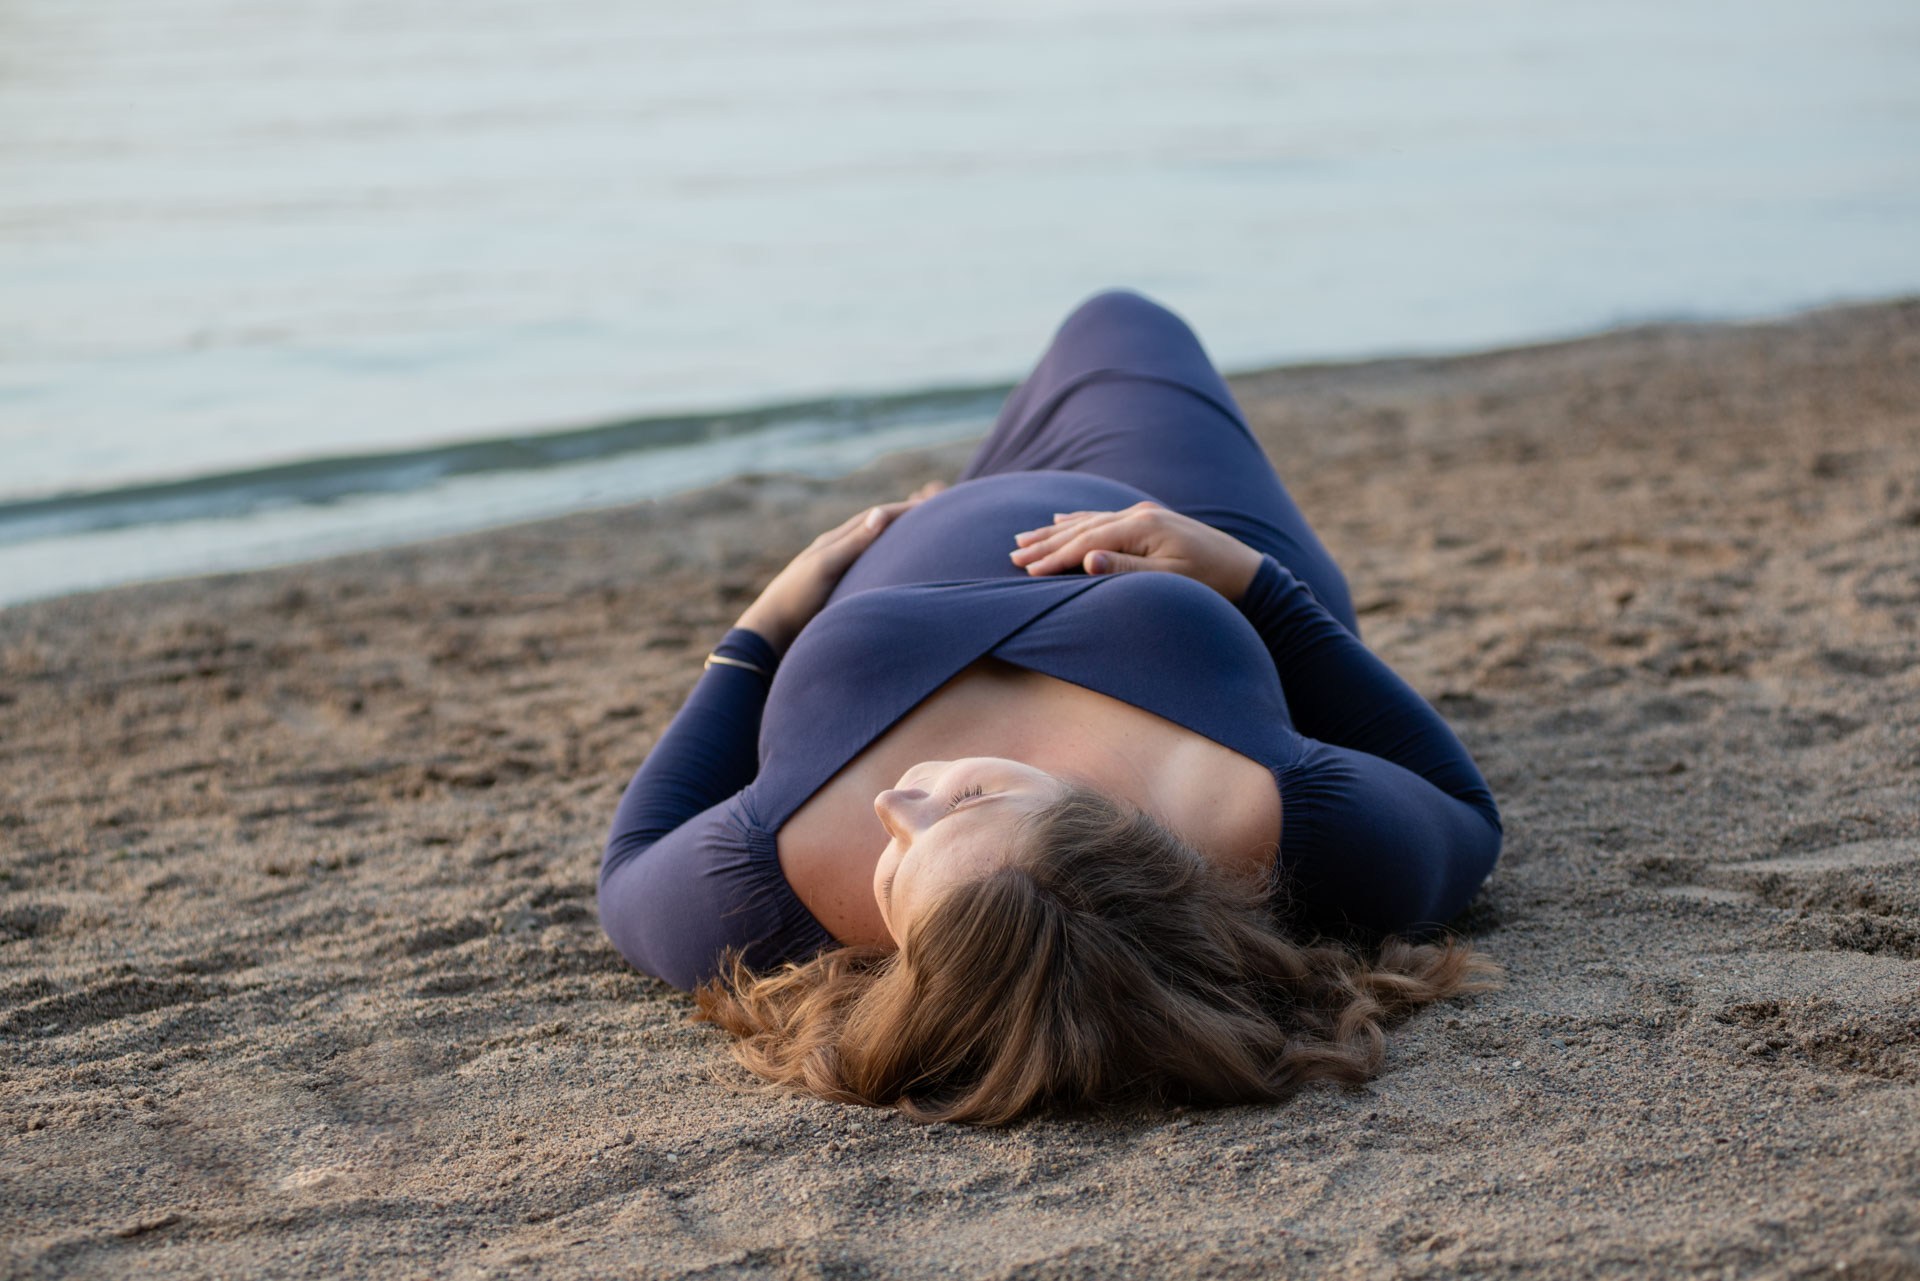 Maternity photo session on beach wearing gown from Addie Lane Studios' client closet. Plymouth, MN